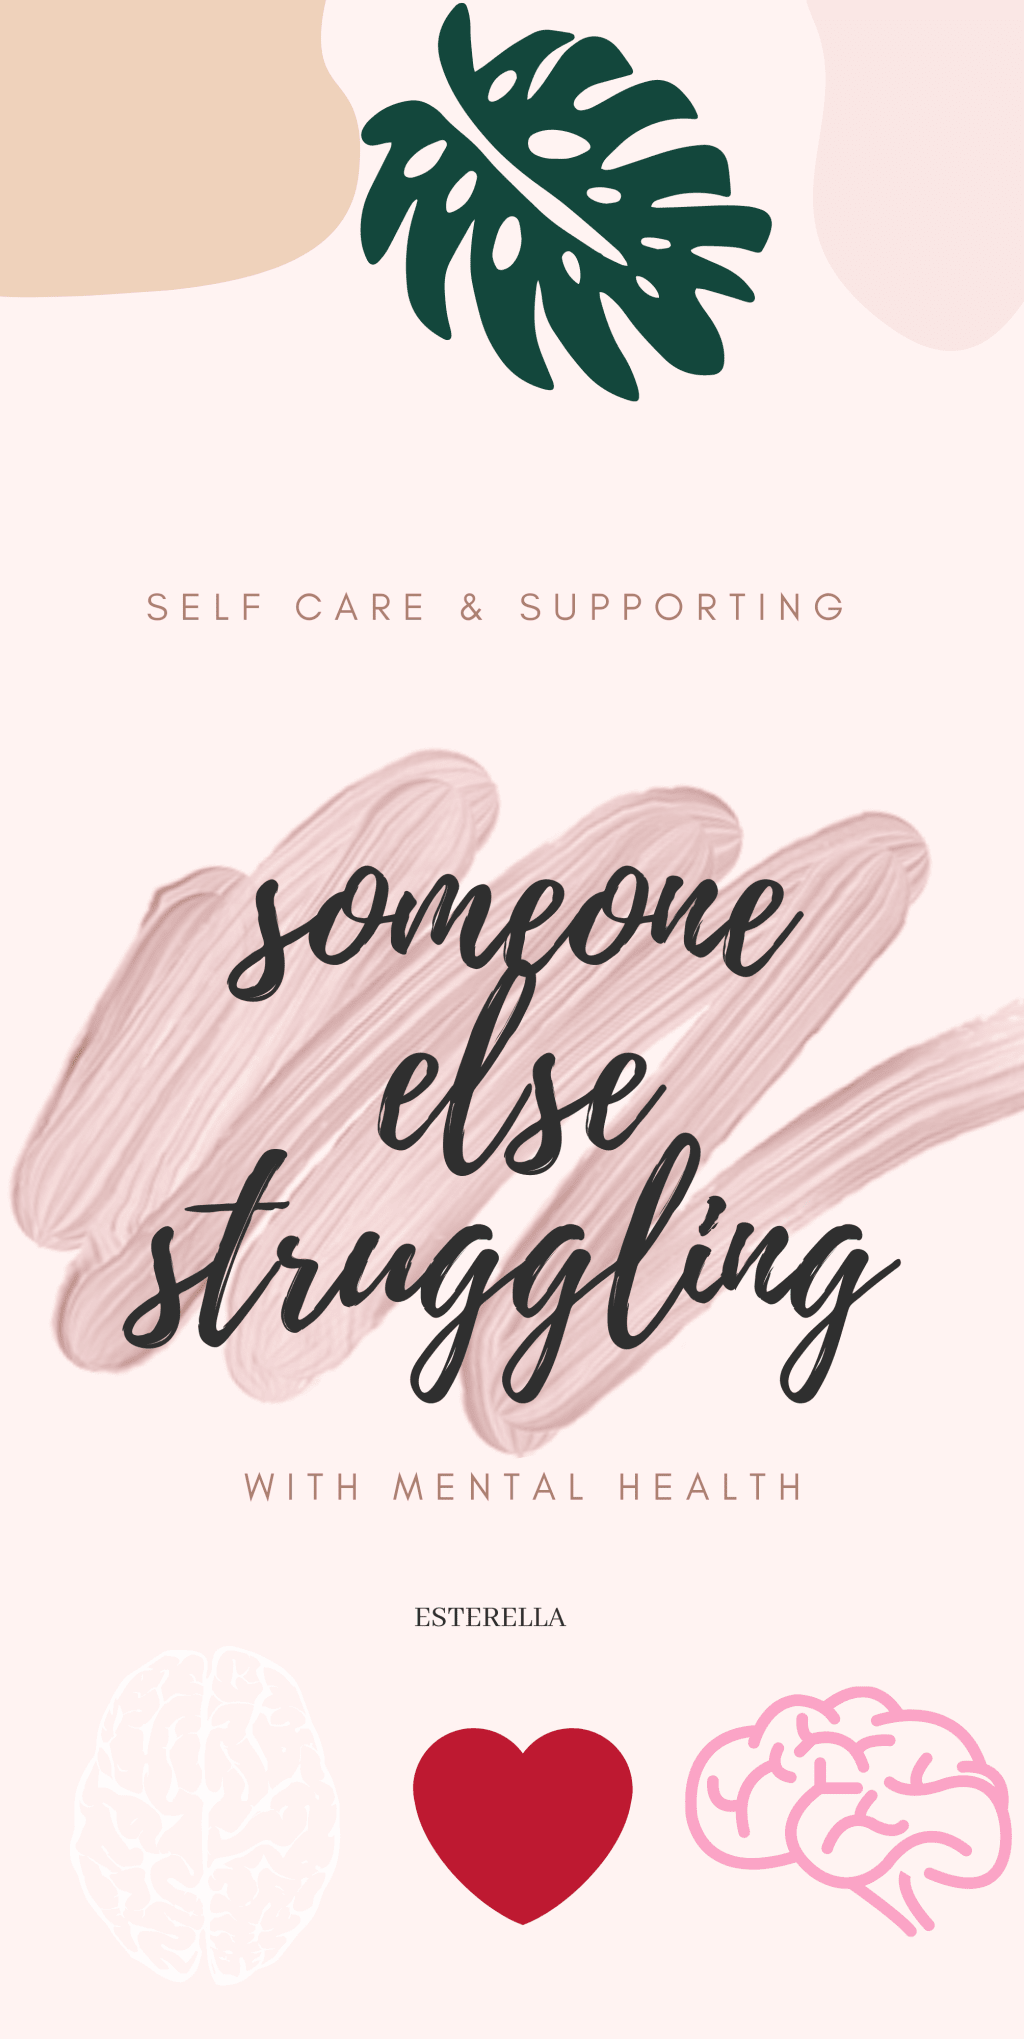 Supporting someone struggling with their mental health